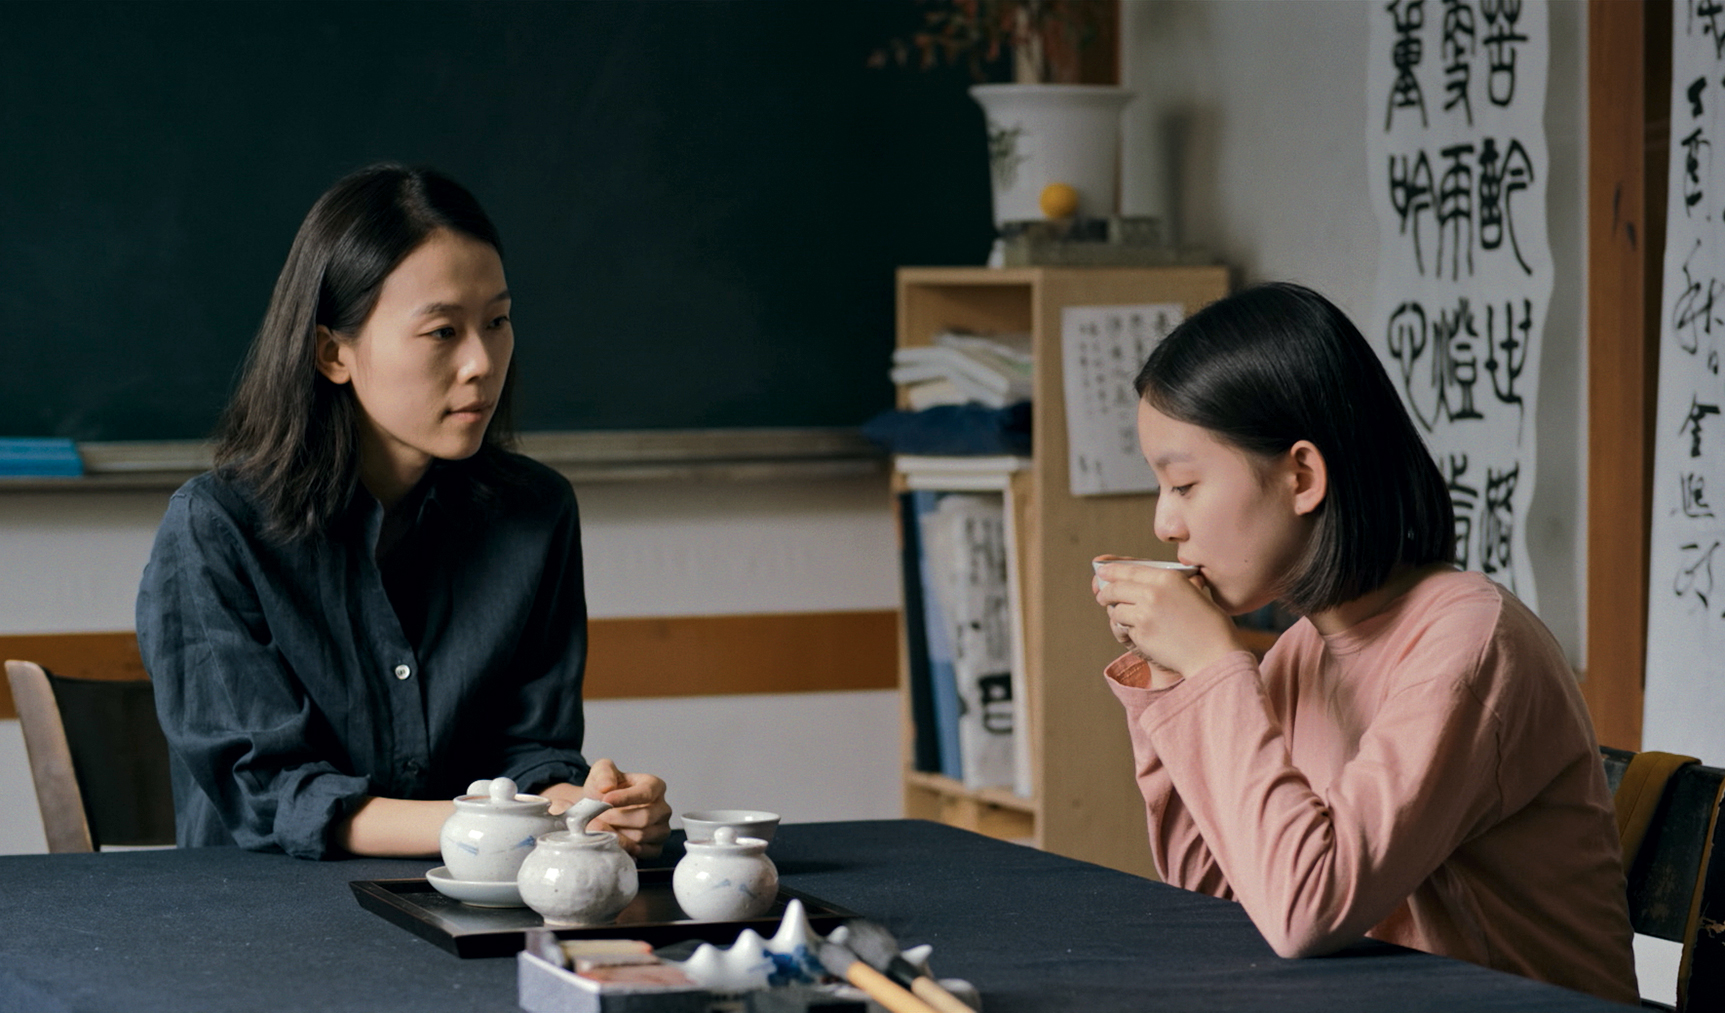 "<p>Garnering acclaim and awards at festivals in Busan and Berlin, this coming-of-age drama set in 1994 tells the story of a 14-year-old in search of connection. Often compared to last year's ""Eighth Grade"", ""House of Hummingbird"" is a quiet, but potent film about love, loneliness and one young girl's journey in the throes of adolescence. (Image: SIFF)</p>"